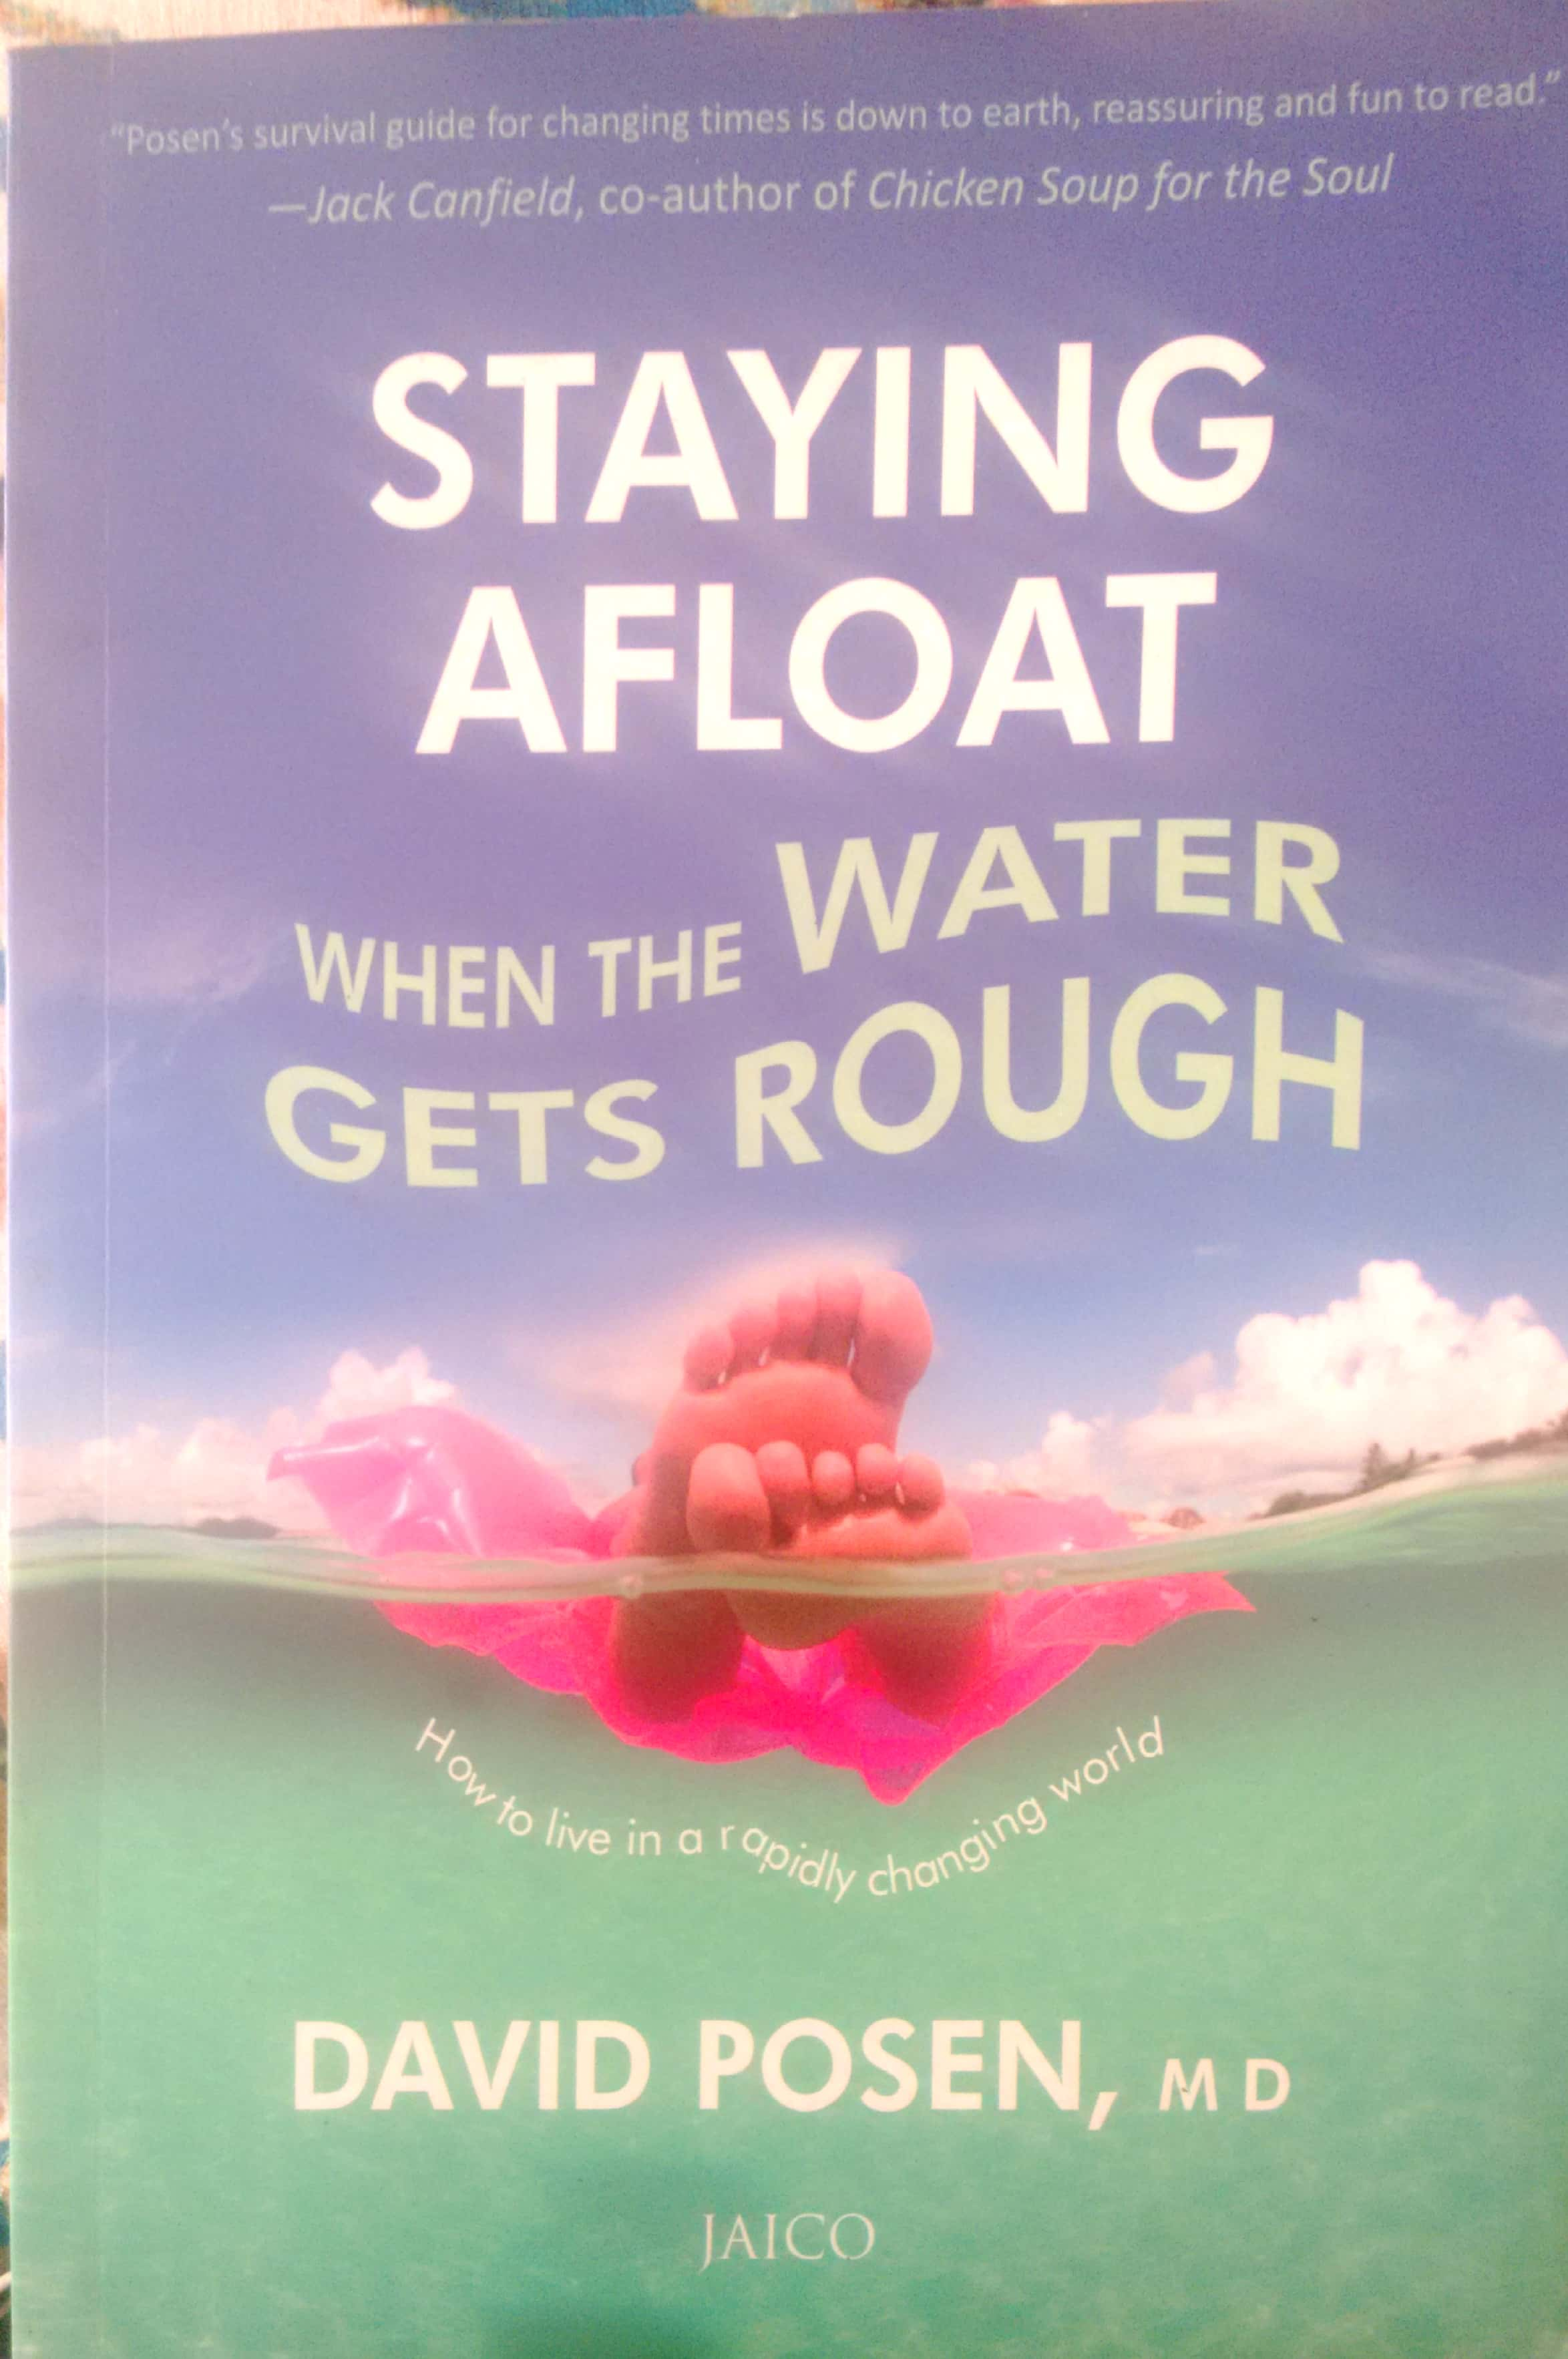 Staying Afloat When the Water Gets Rough